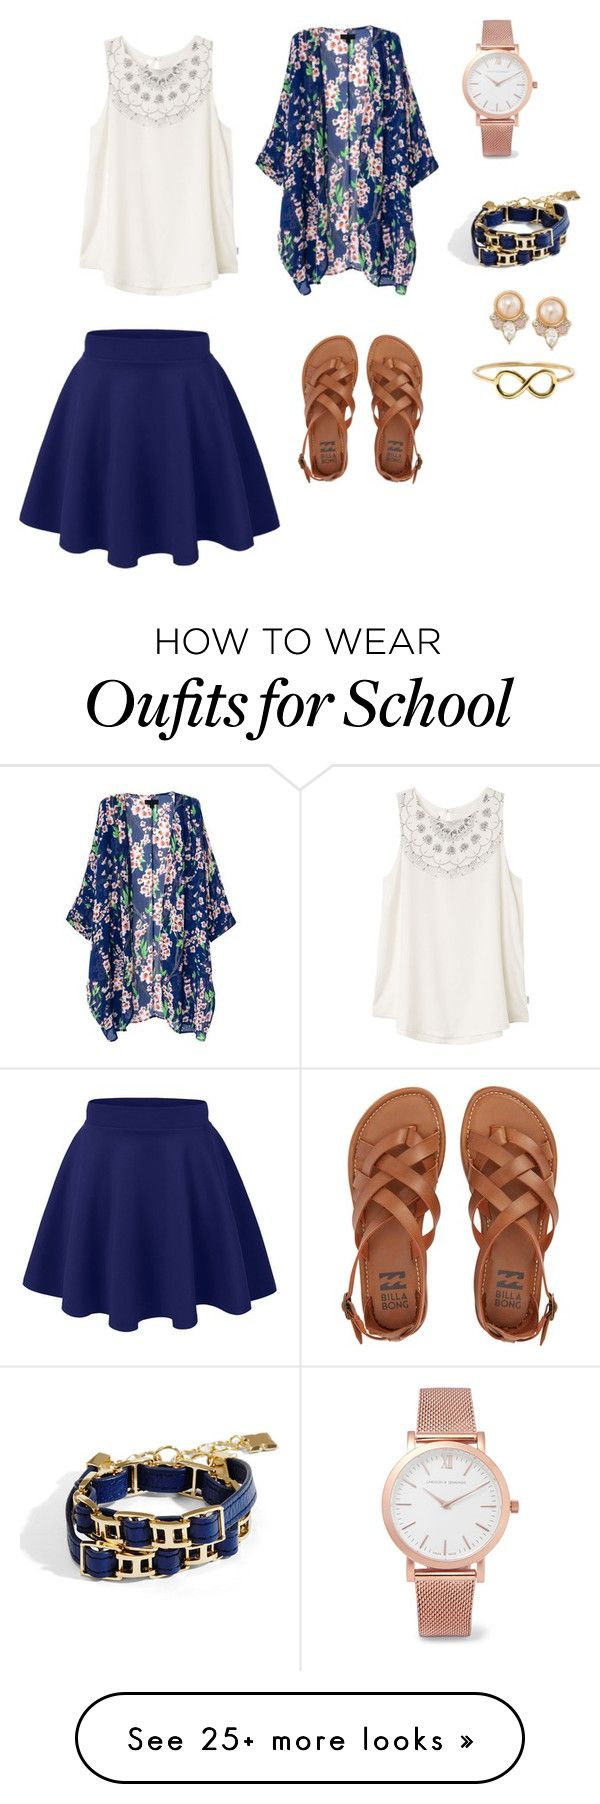 """Day to school"" by alainamarie101 on Polyvore featuring RVCA, Billabong, Larsson & Jennings, BCBGMAXAZRIA and Carolee"